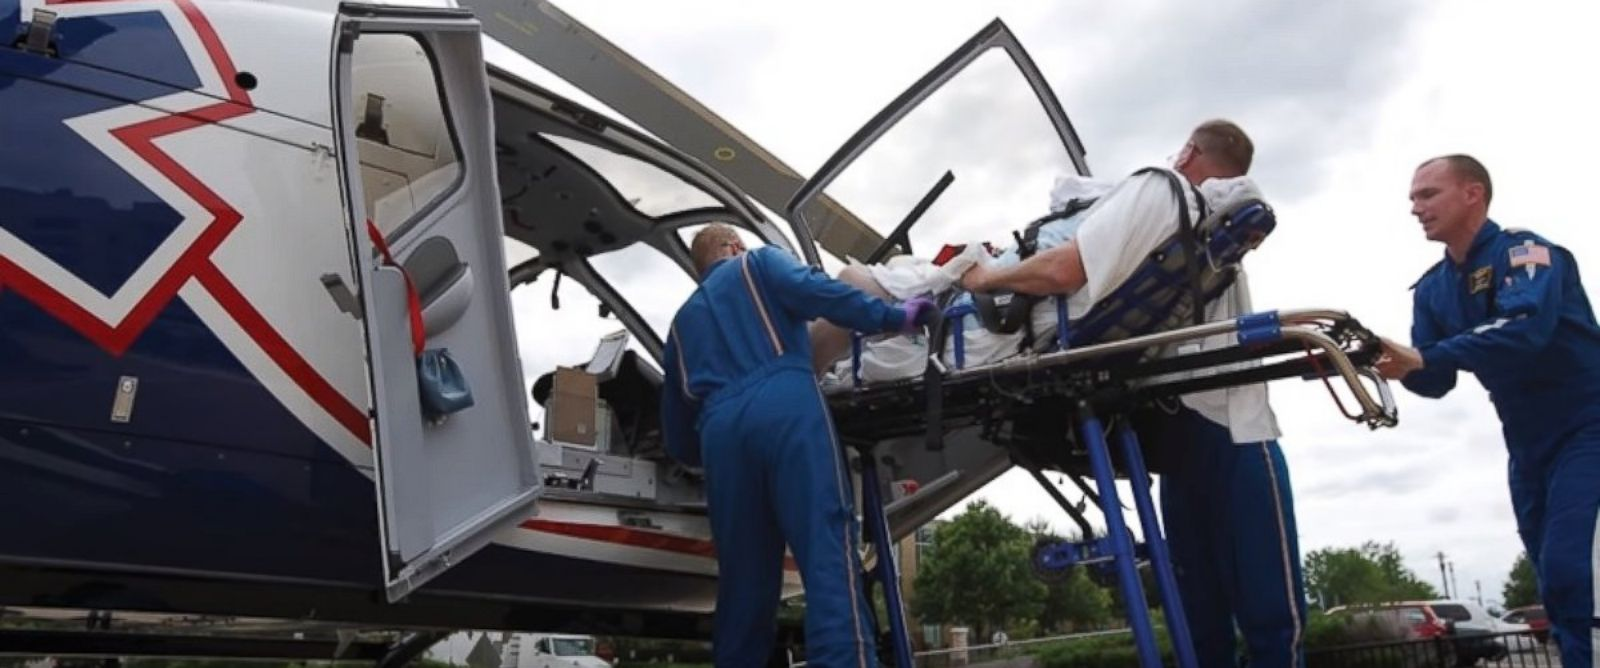 PHOTO: Air Methods employees transport a patient in this image from the Air Methods YouTube page.